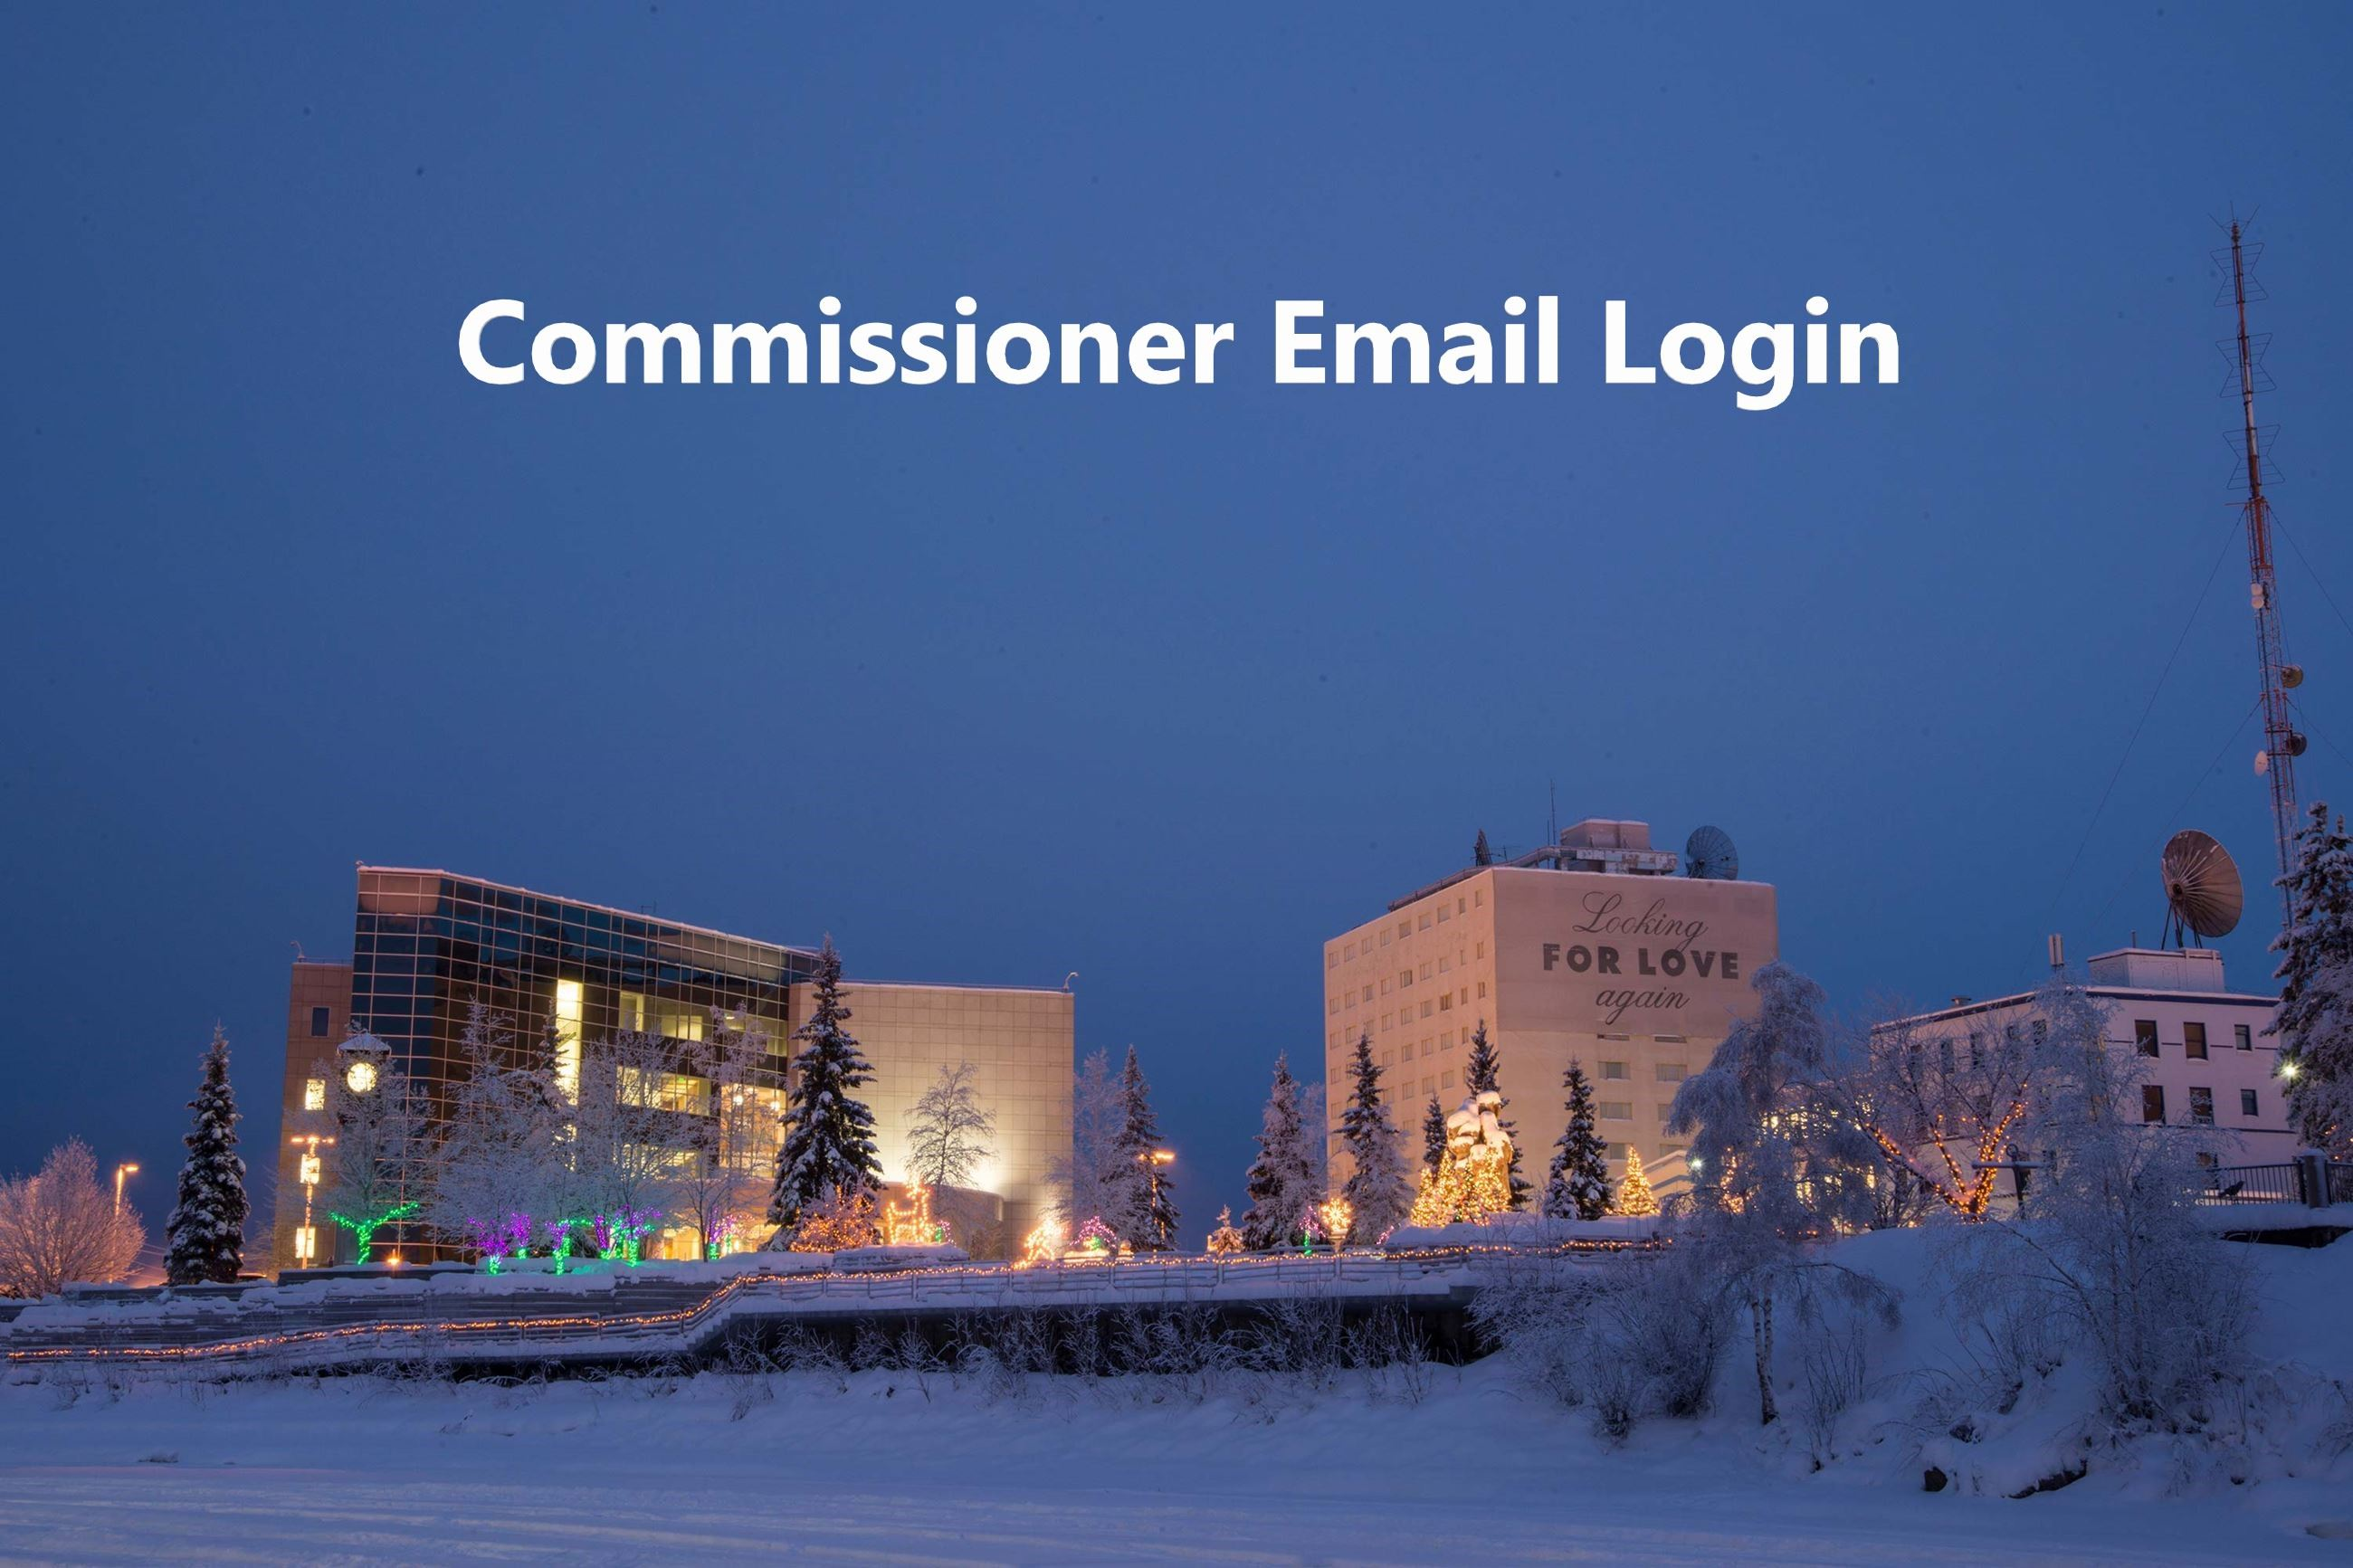 Commissioner Email Login Photo